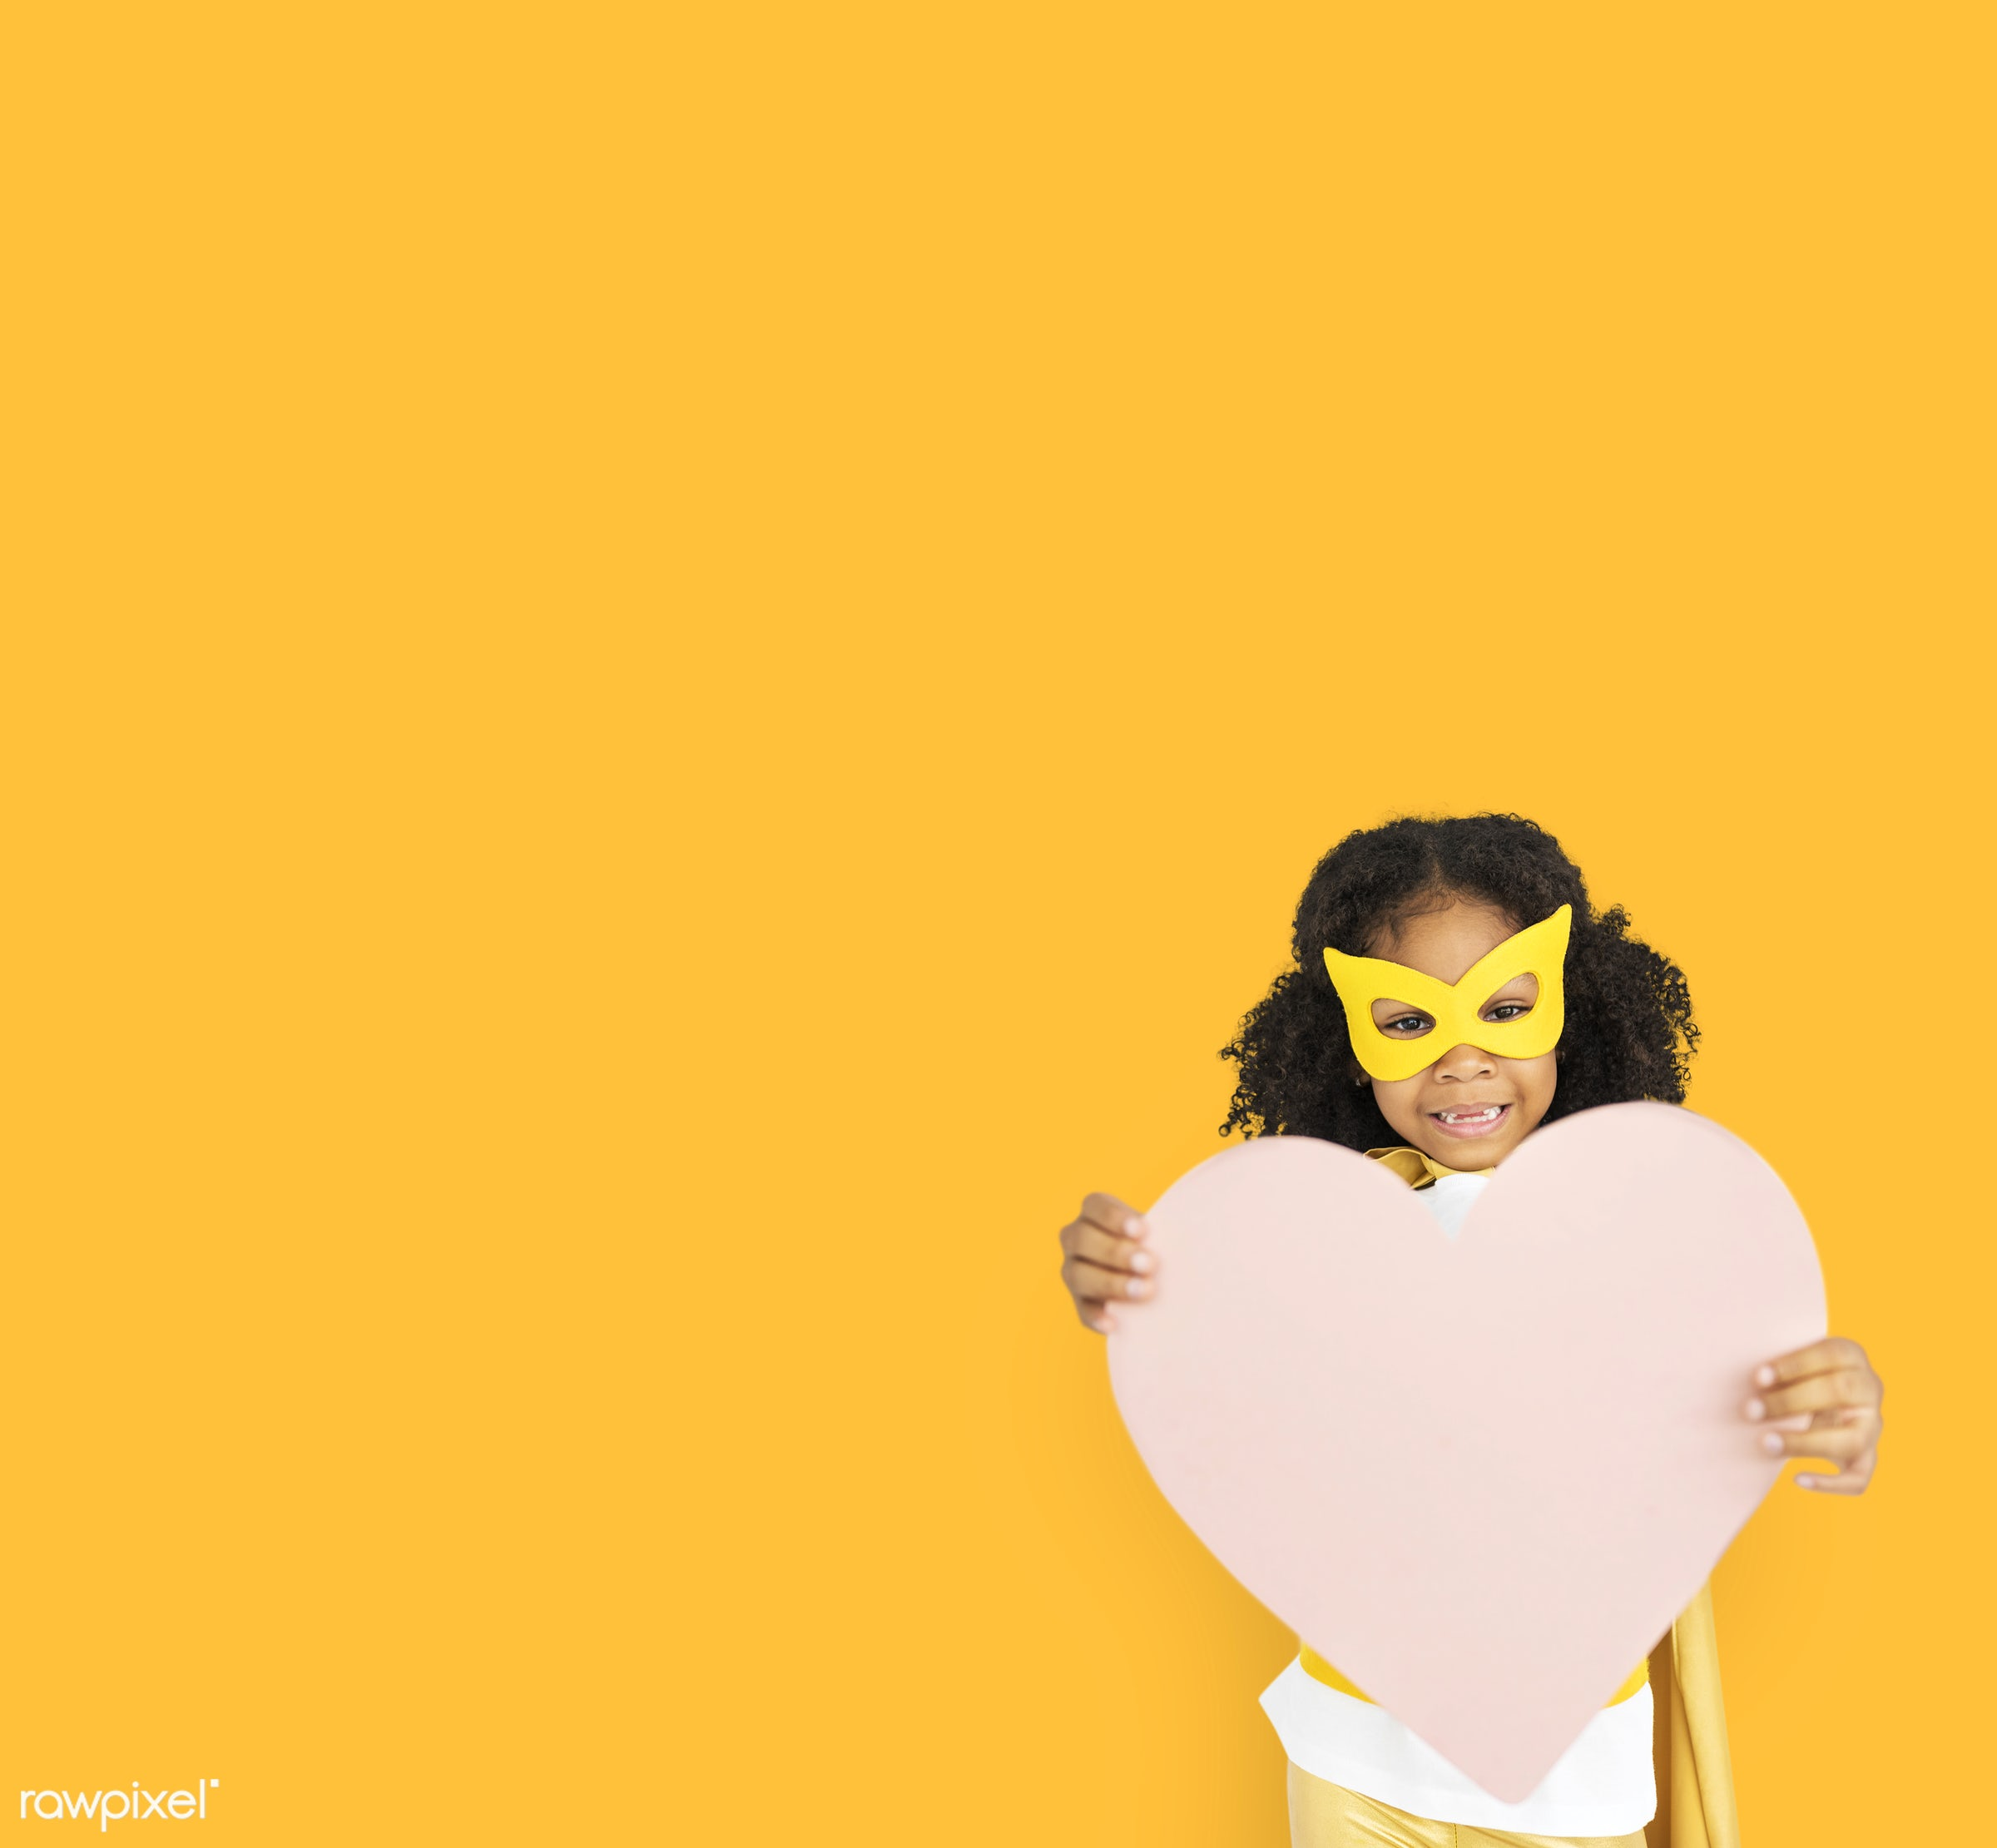 studio, expression, person, holding, mask, yellow, people, kid, love, solo, childhood, smile, cheerful, smiling, isolated,...